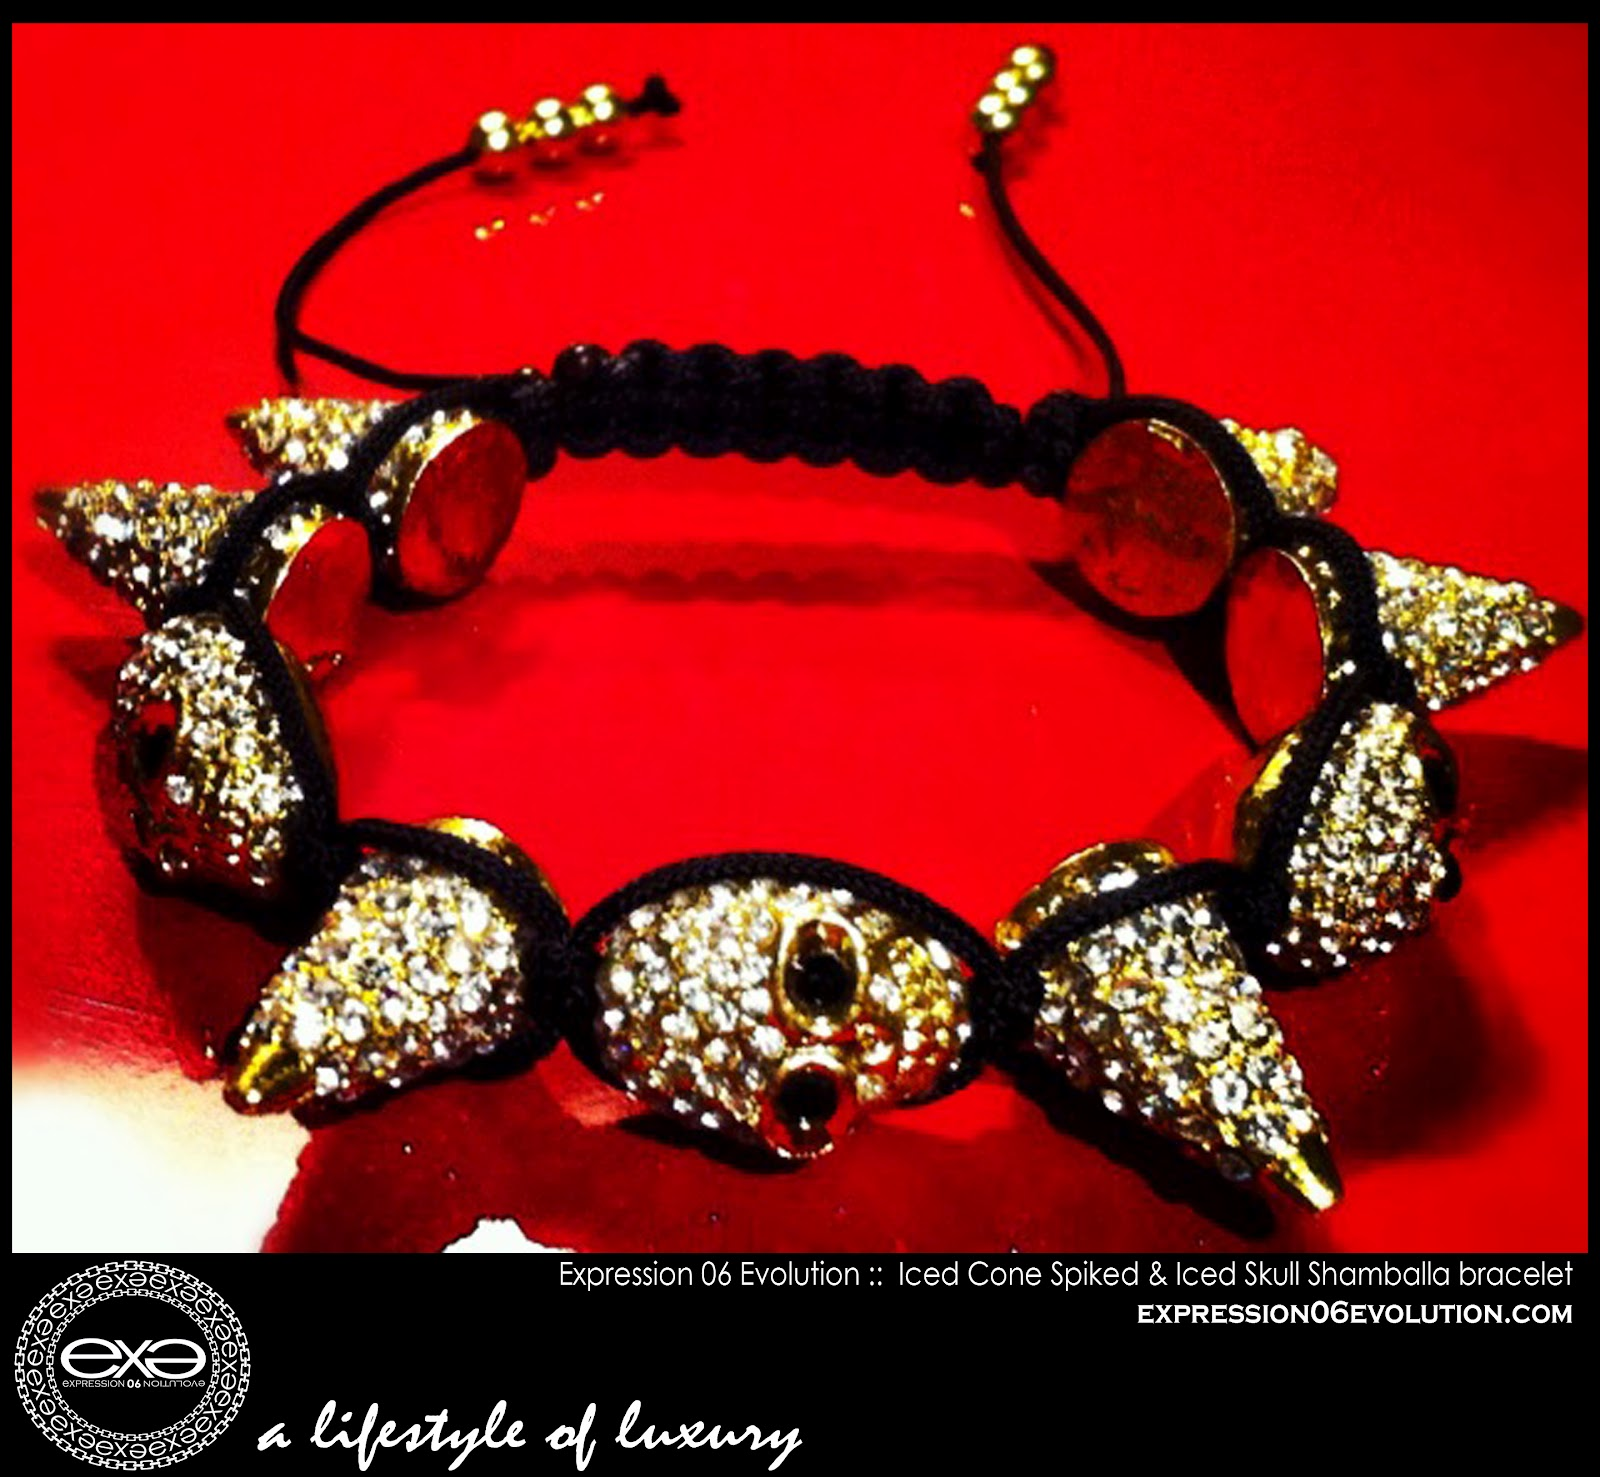 http://2.bp.blogspot.com/-lo9LJv3LE1c/UCY5PFIcZcI/AAAAAAAAB3A/w0lWWoqlMso/s1600/EXPRESSION+06+EVOLUTION+-+SPIKED+SHAMBALLA+BRACLET+-+GOLD+cone+SPIKES+and+skll+head+WITH+white+stones+-+EXPRESSIVE+CLOTHING+LLC+-+DUSHON+EX+DANIELS+-+ALEXIS+BELSKI+.jpg